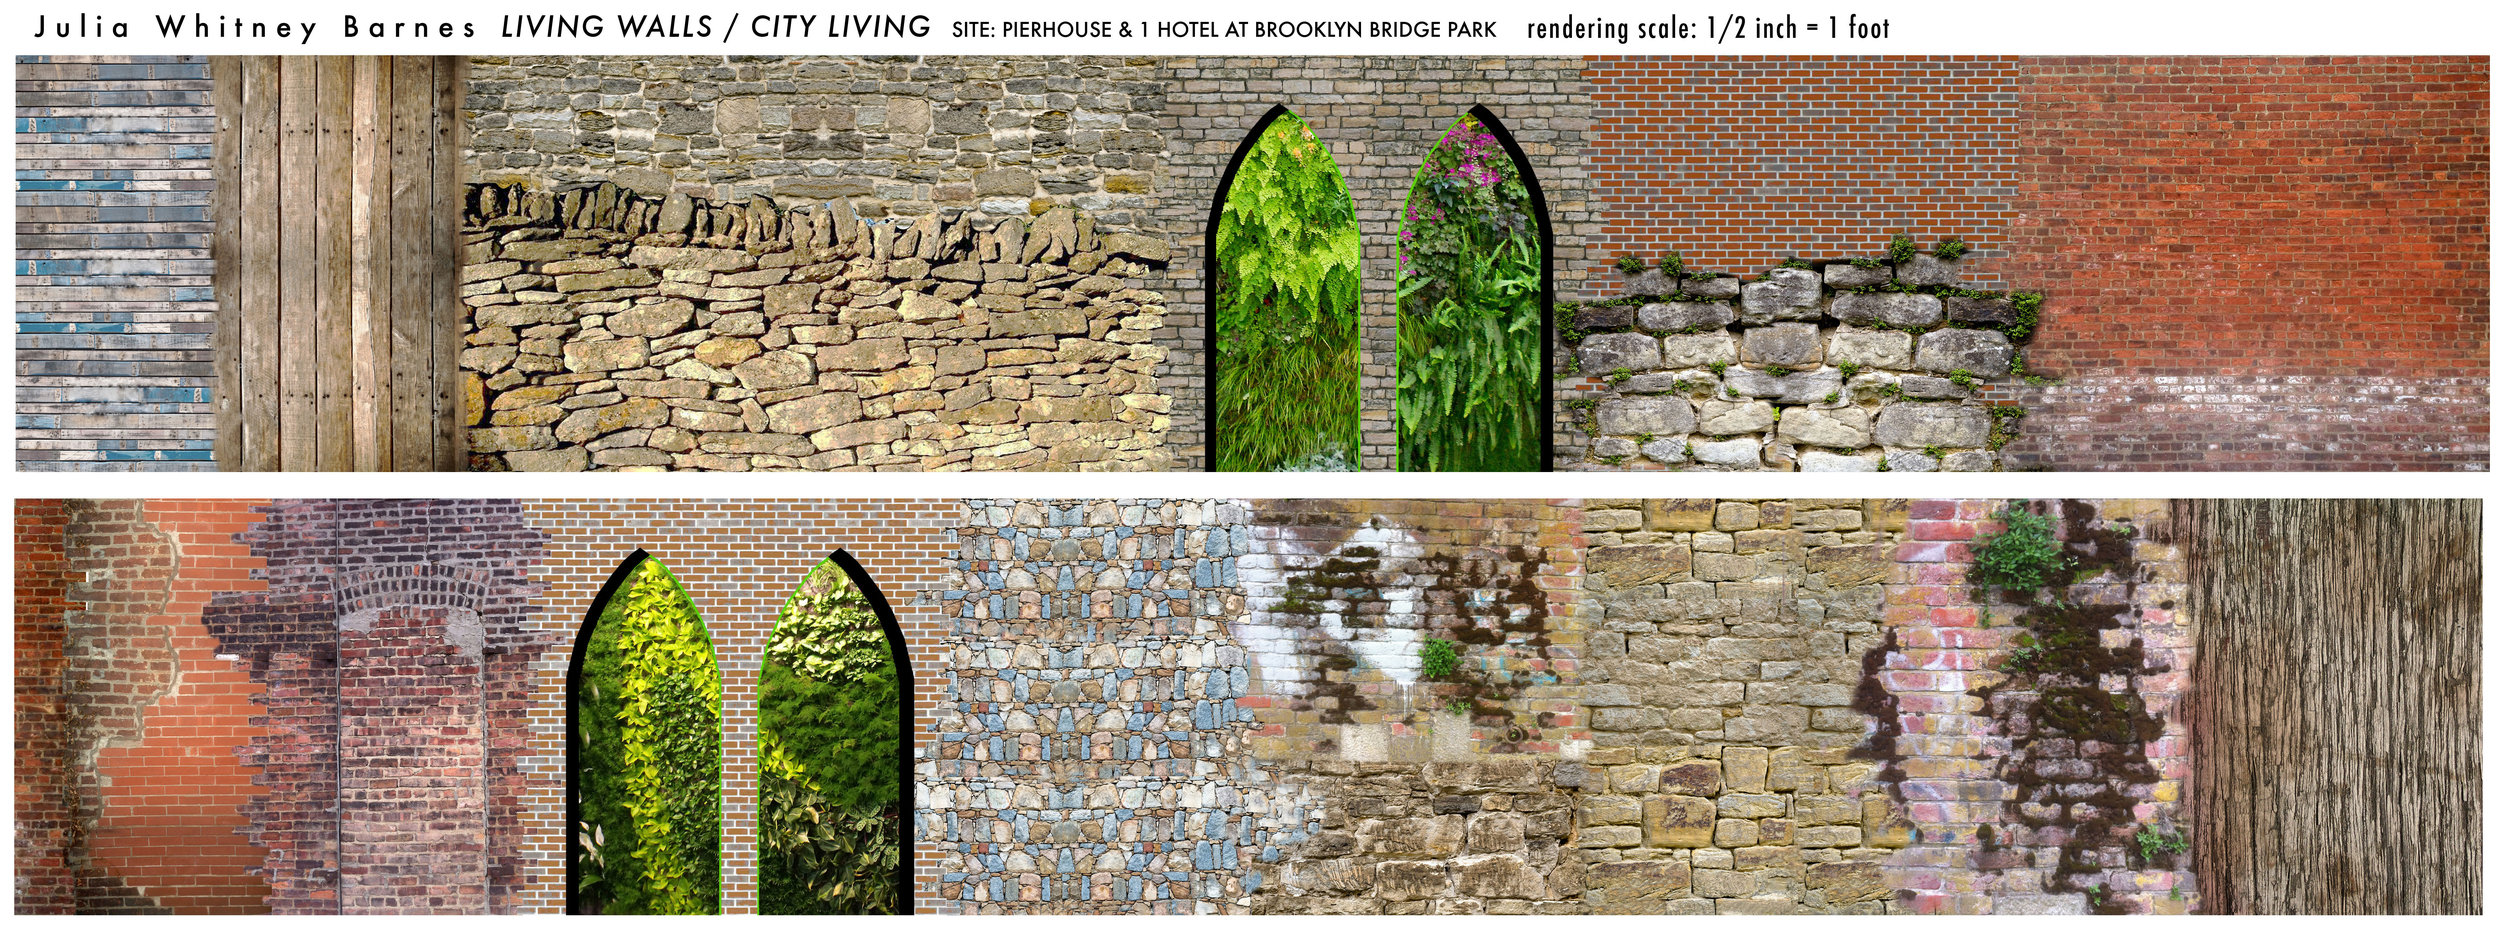 Living Walls, City Living  Mural (Proposed)